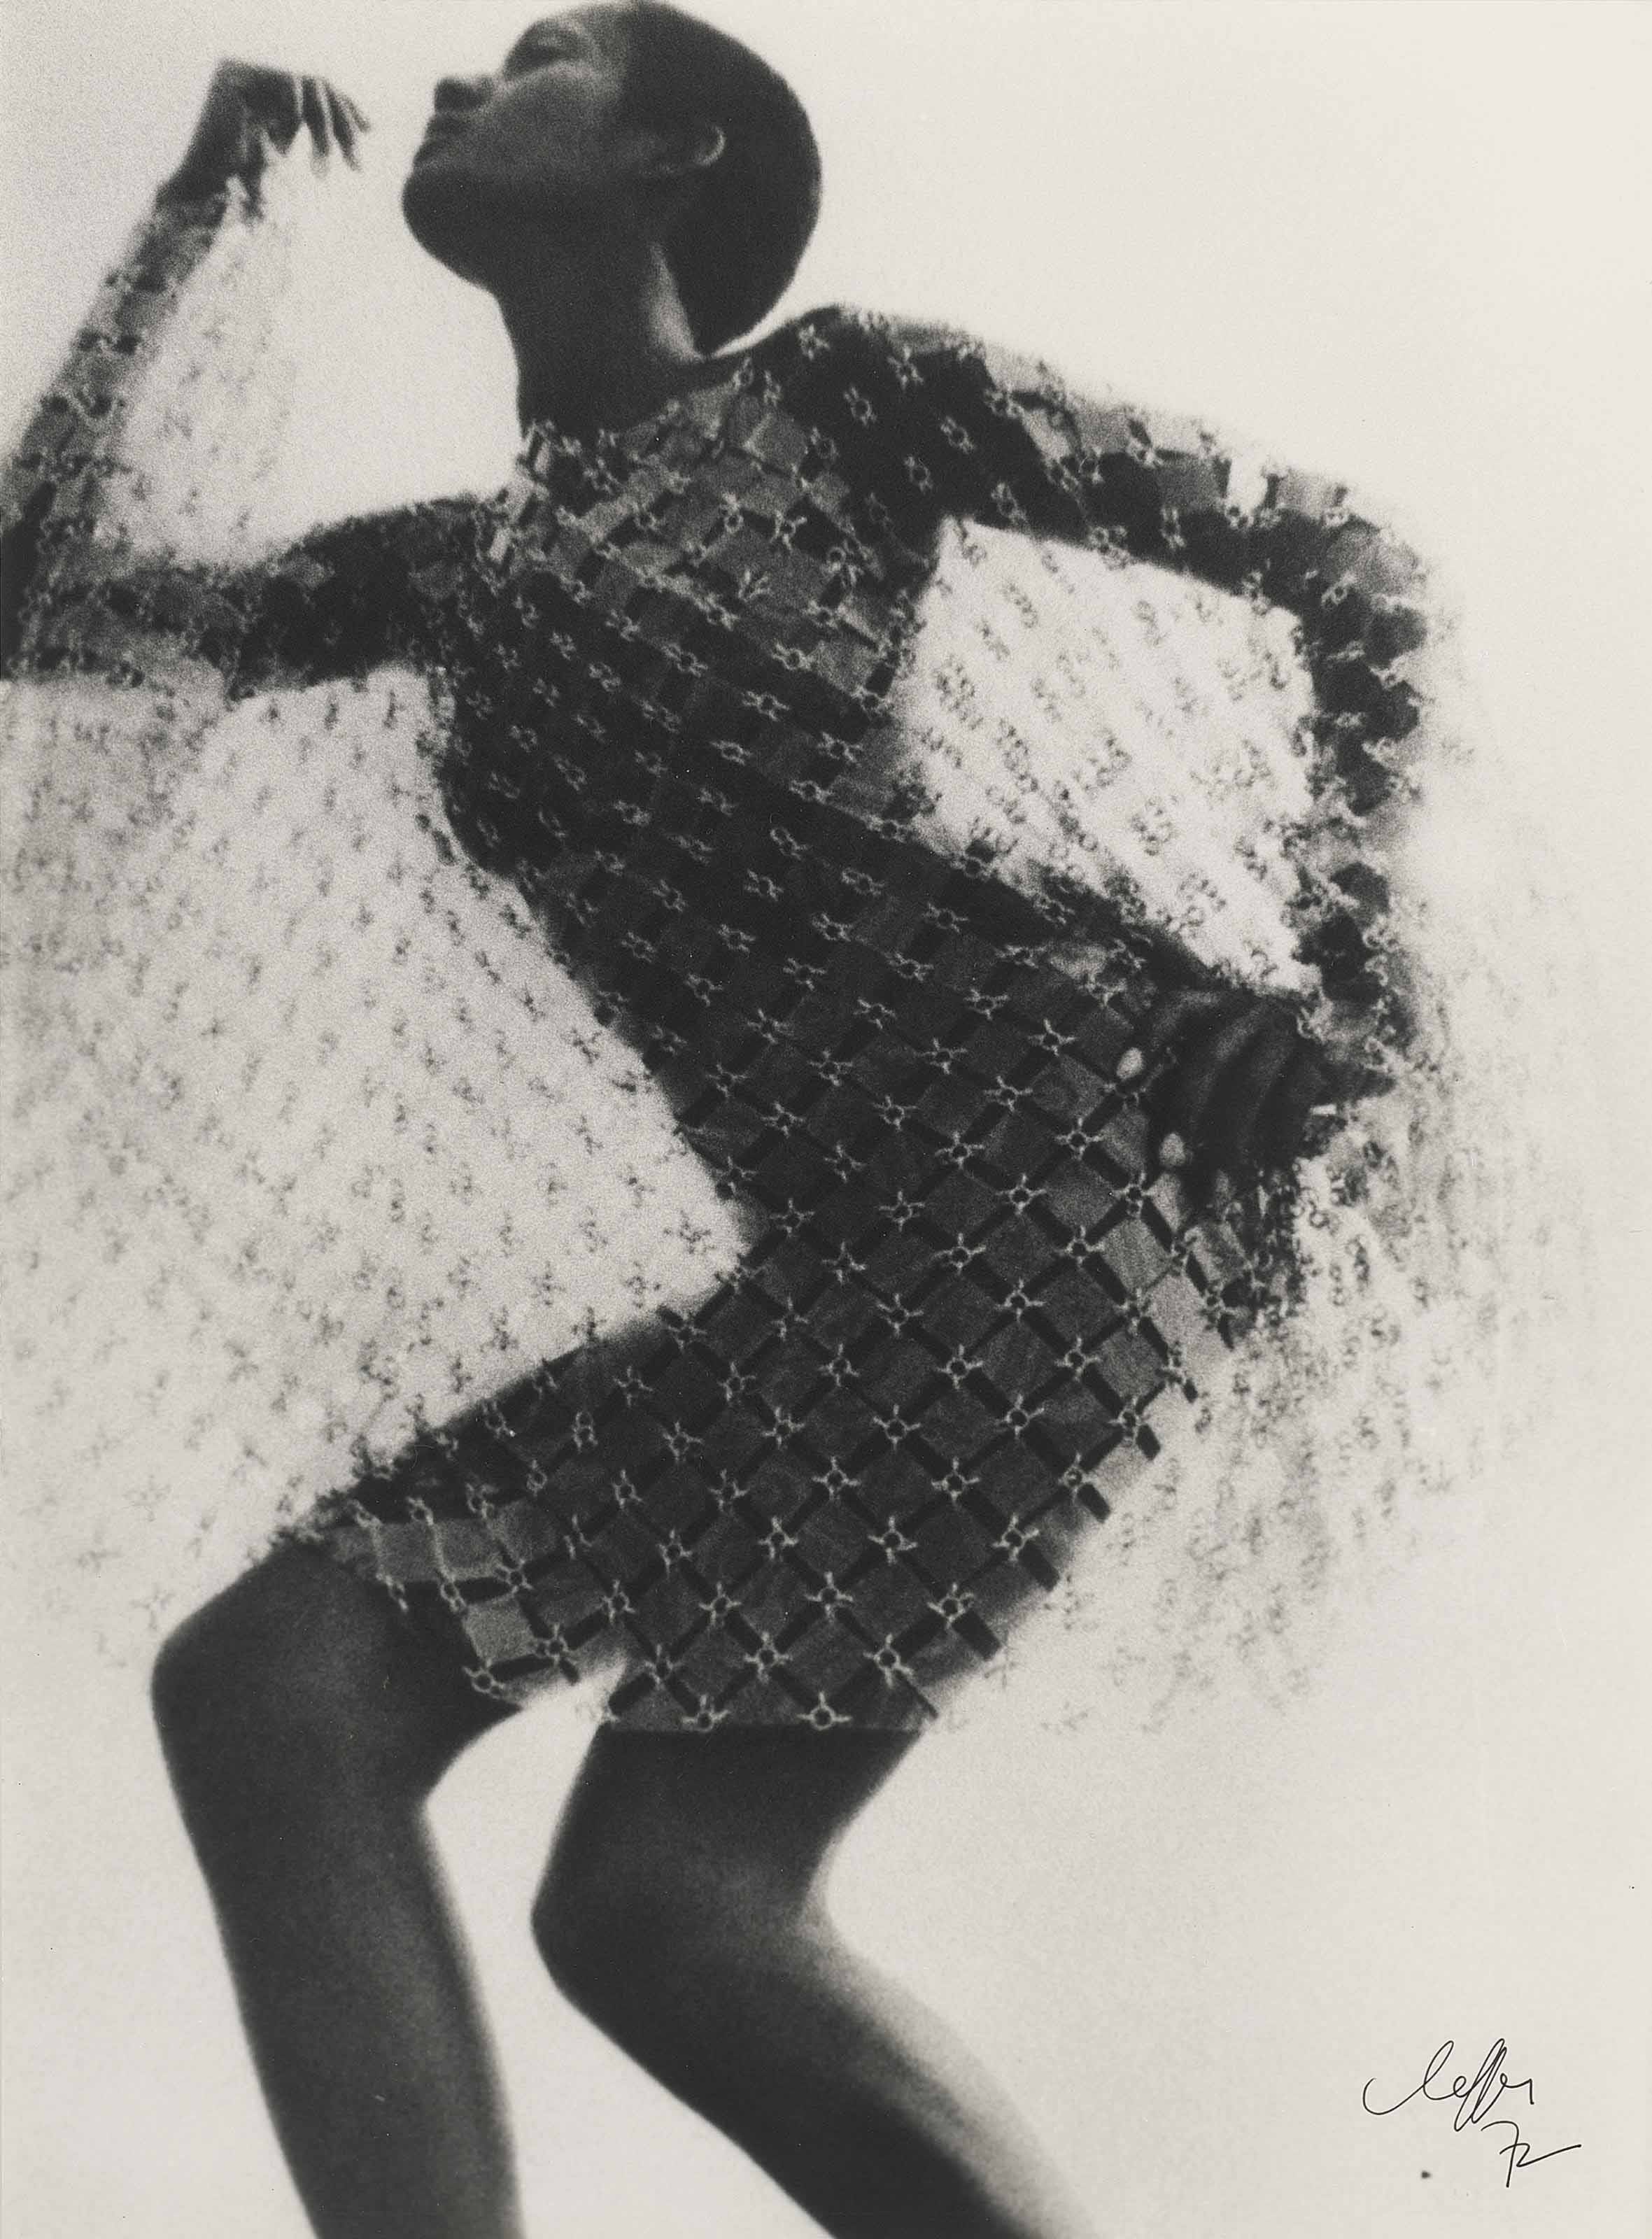 Paco Rabanne dress, 1969